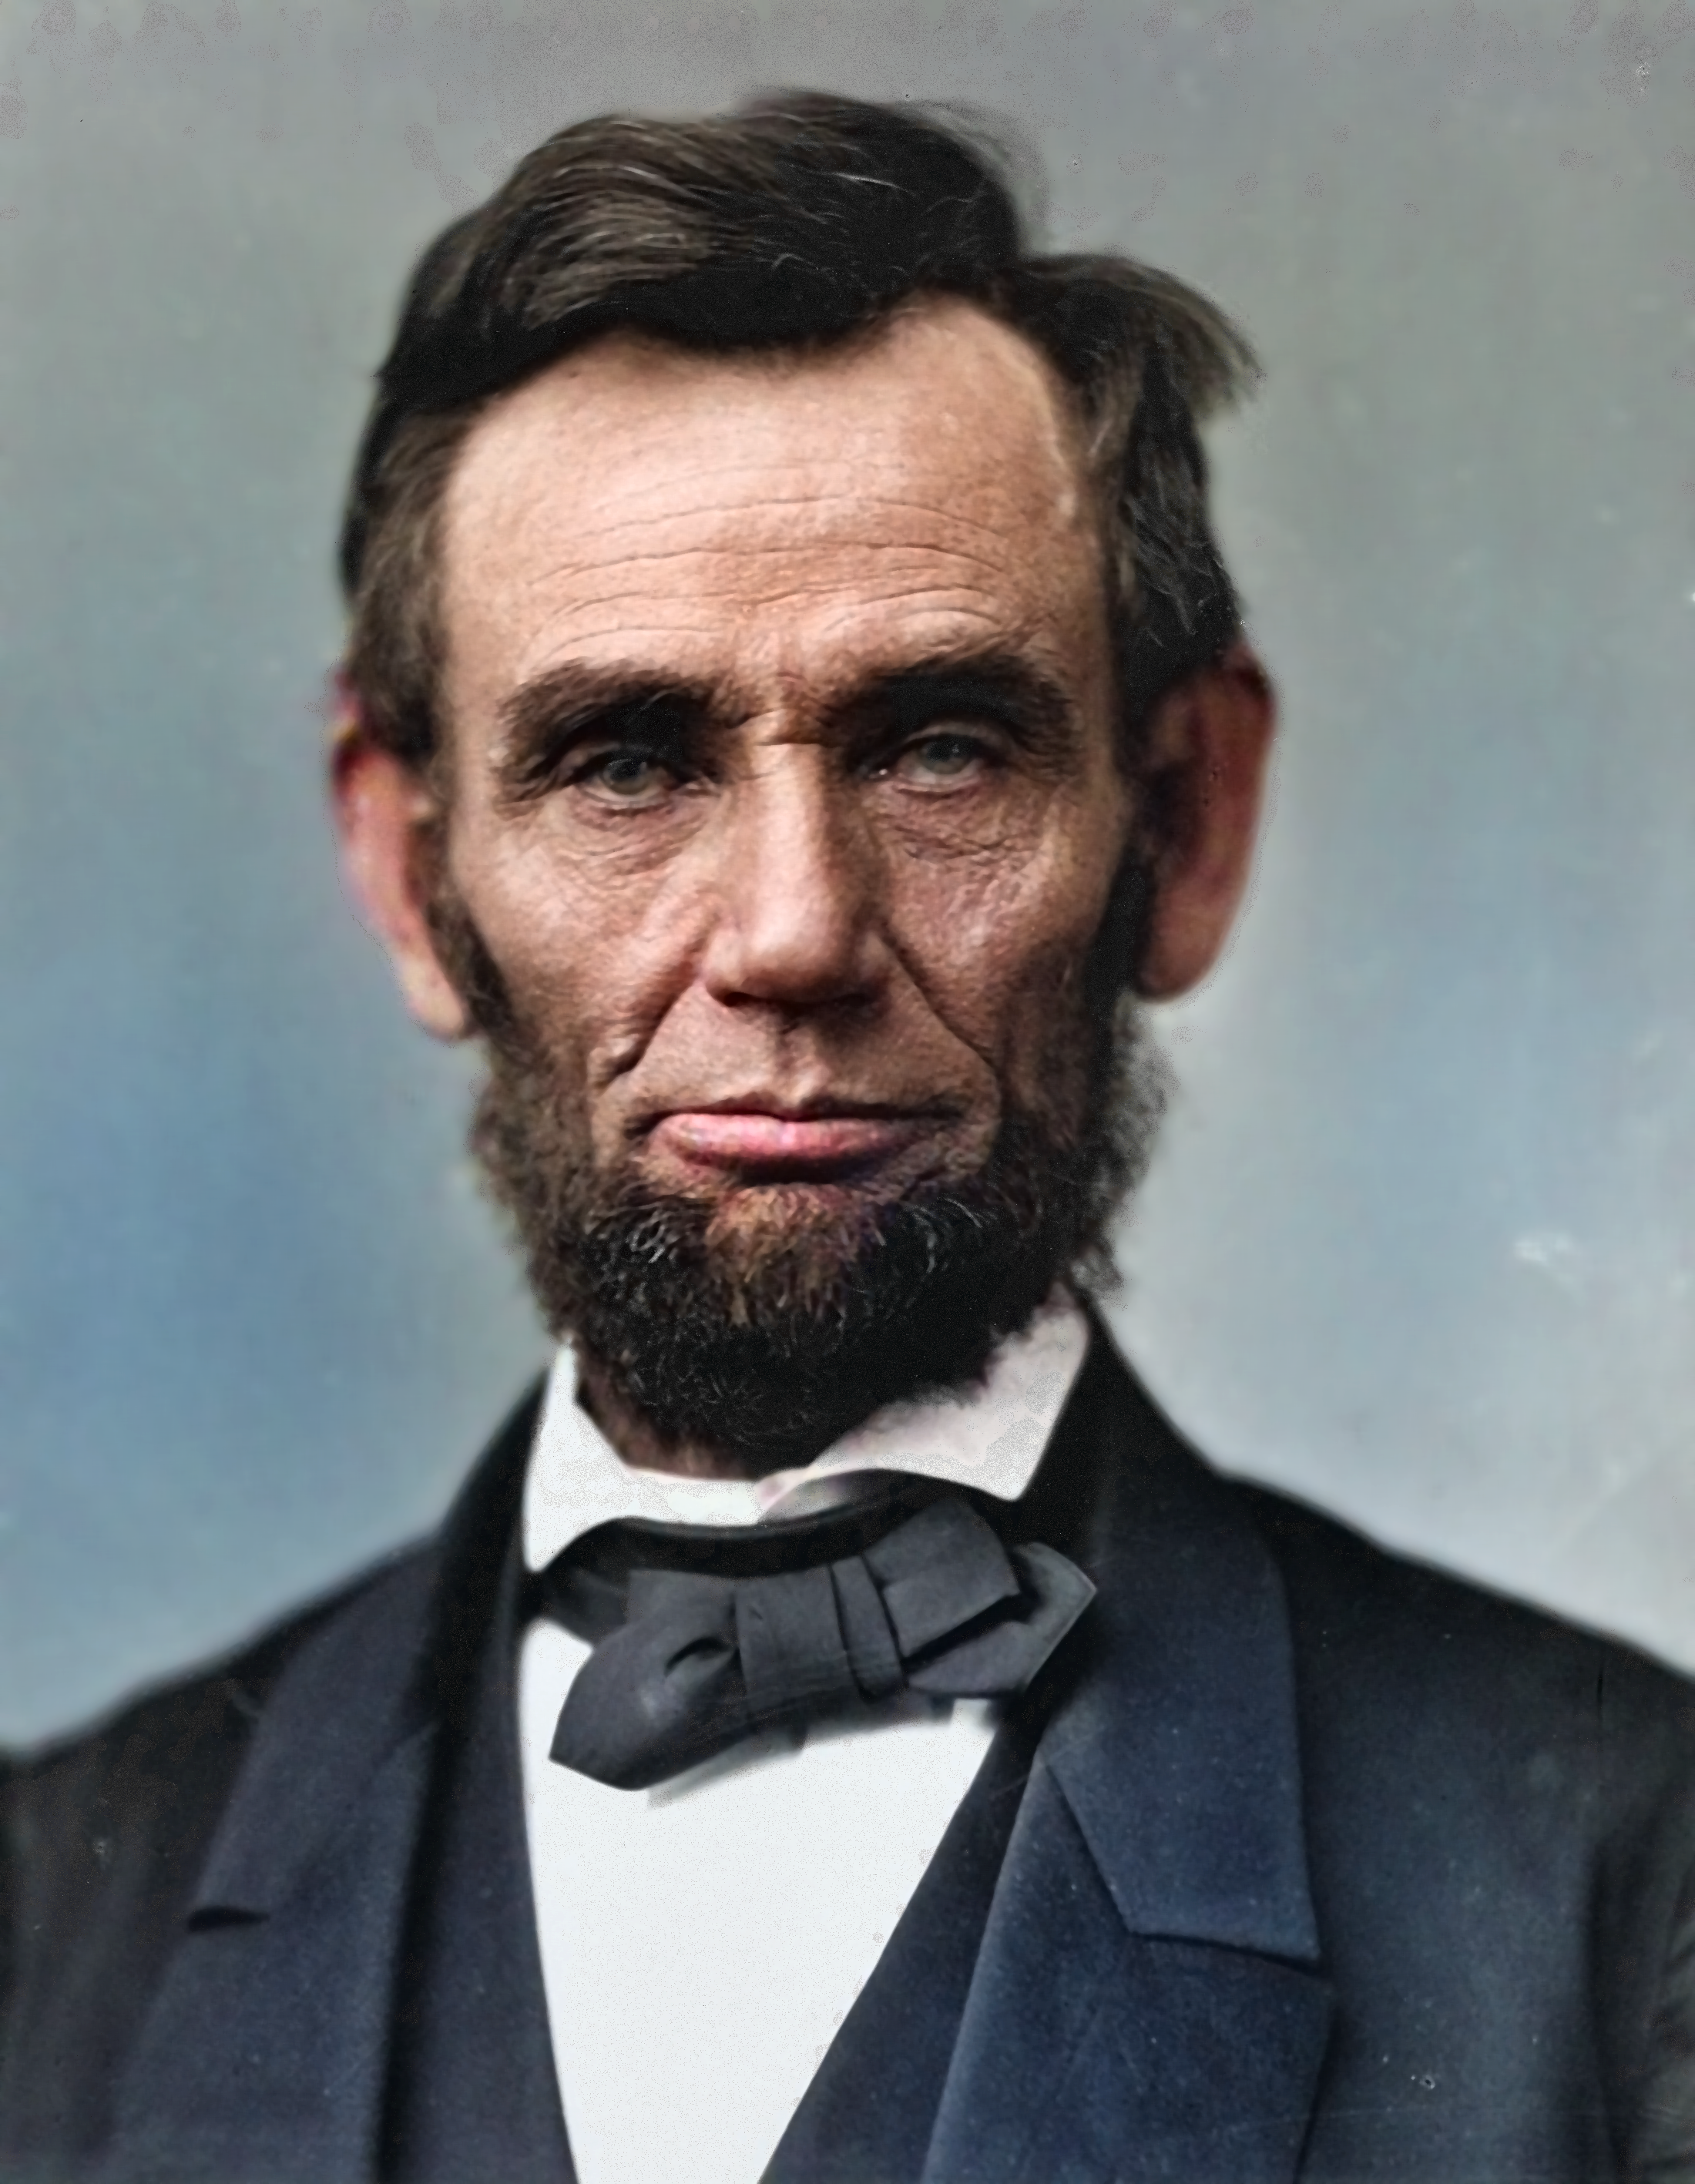 https://upload.wikimedia.org/wikipedia/commons/1/16/Abraham_Lincoln_In_Color.png